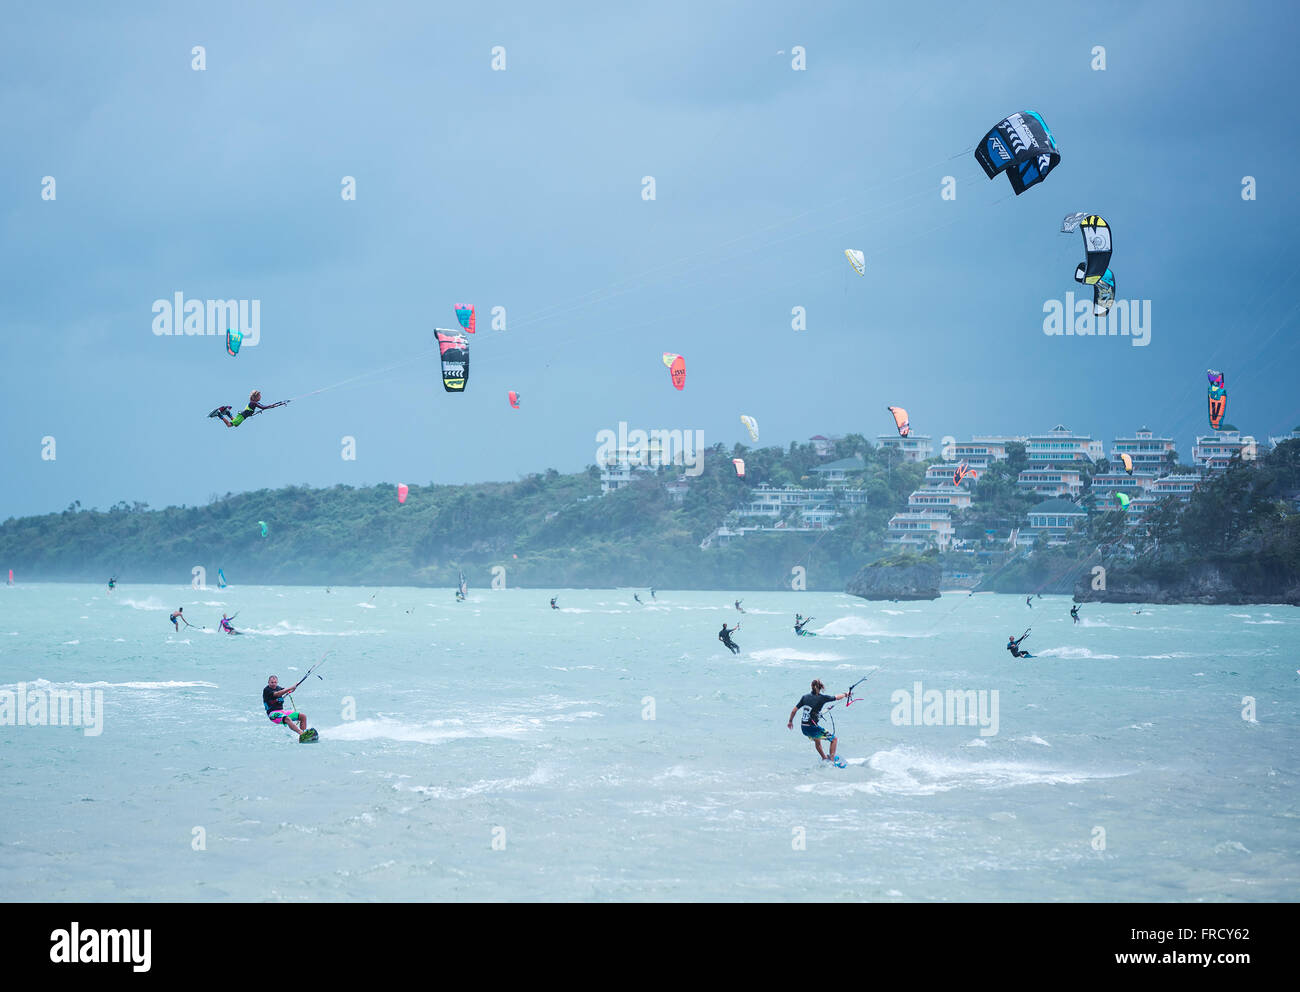 Boracay island, Philippines - January 25: kitesurfers enjoying wind power on Bulabog beach. - Stock Image